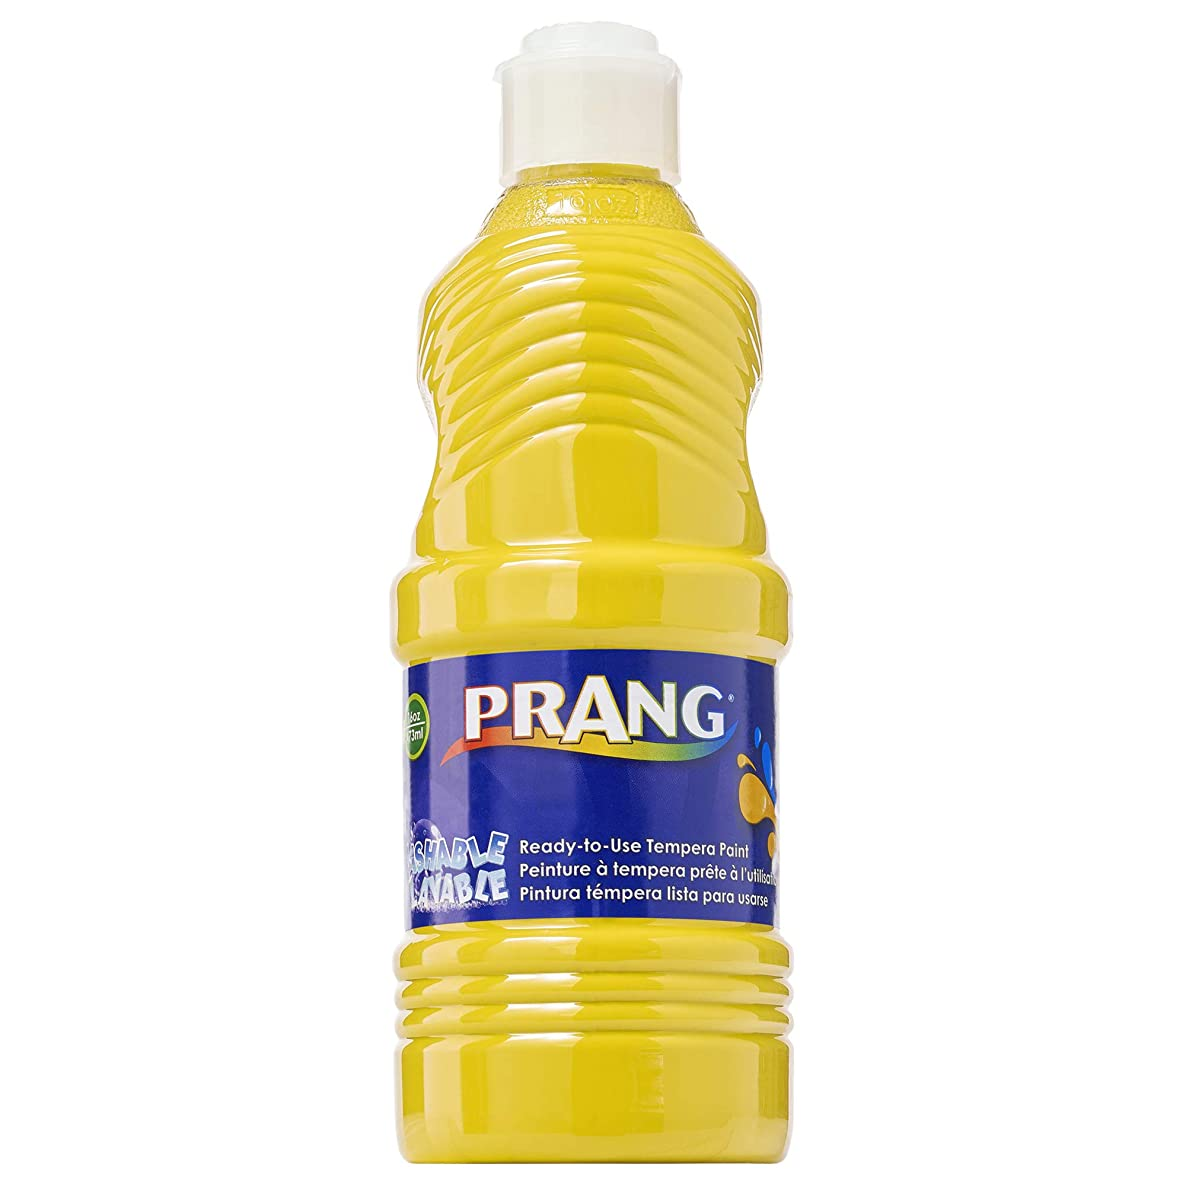 PRANG Ready-to-Use Washable Tempera Paint, 16-Ounce Bottle, Yellow (10703)